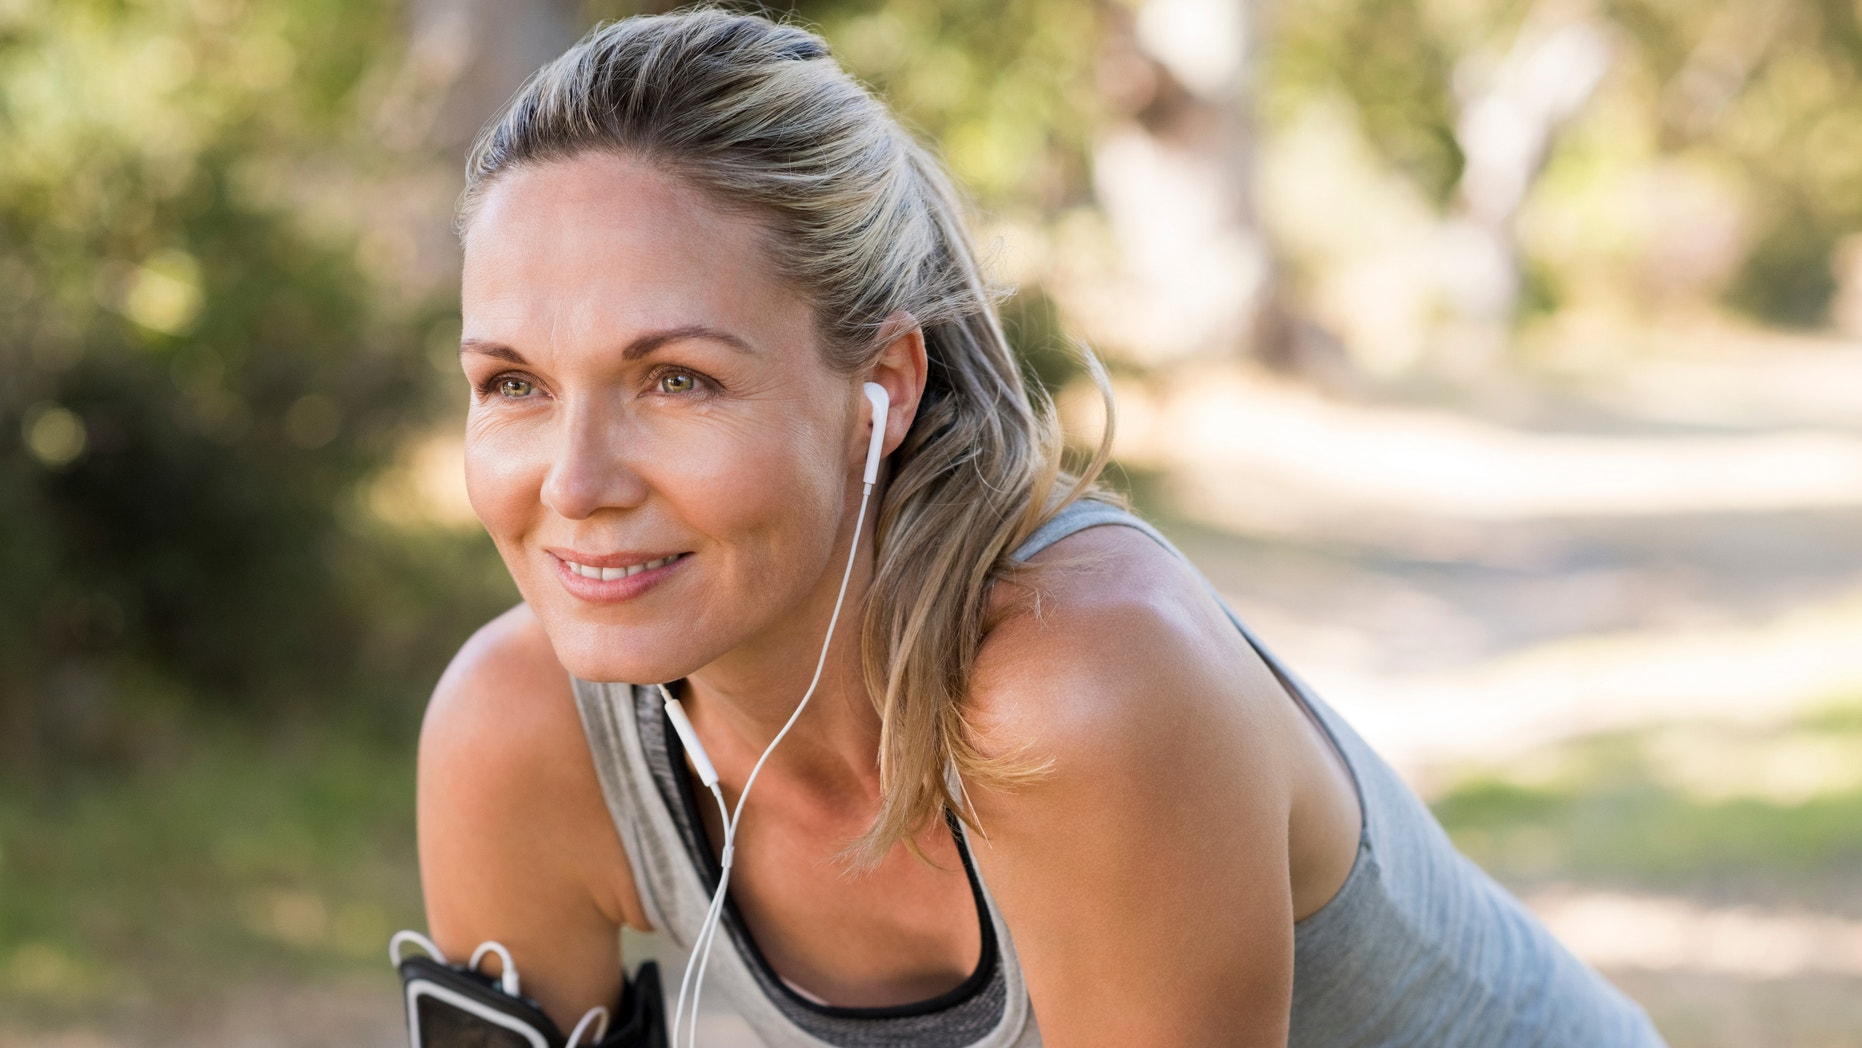 Portrait of athletic mature woman resting after jogging. Beautiful senior blonde woman running at the park on a sunny day. Female runner listening to music while jogging.